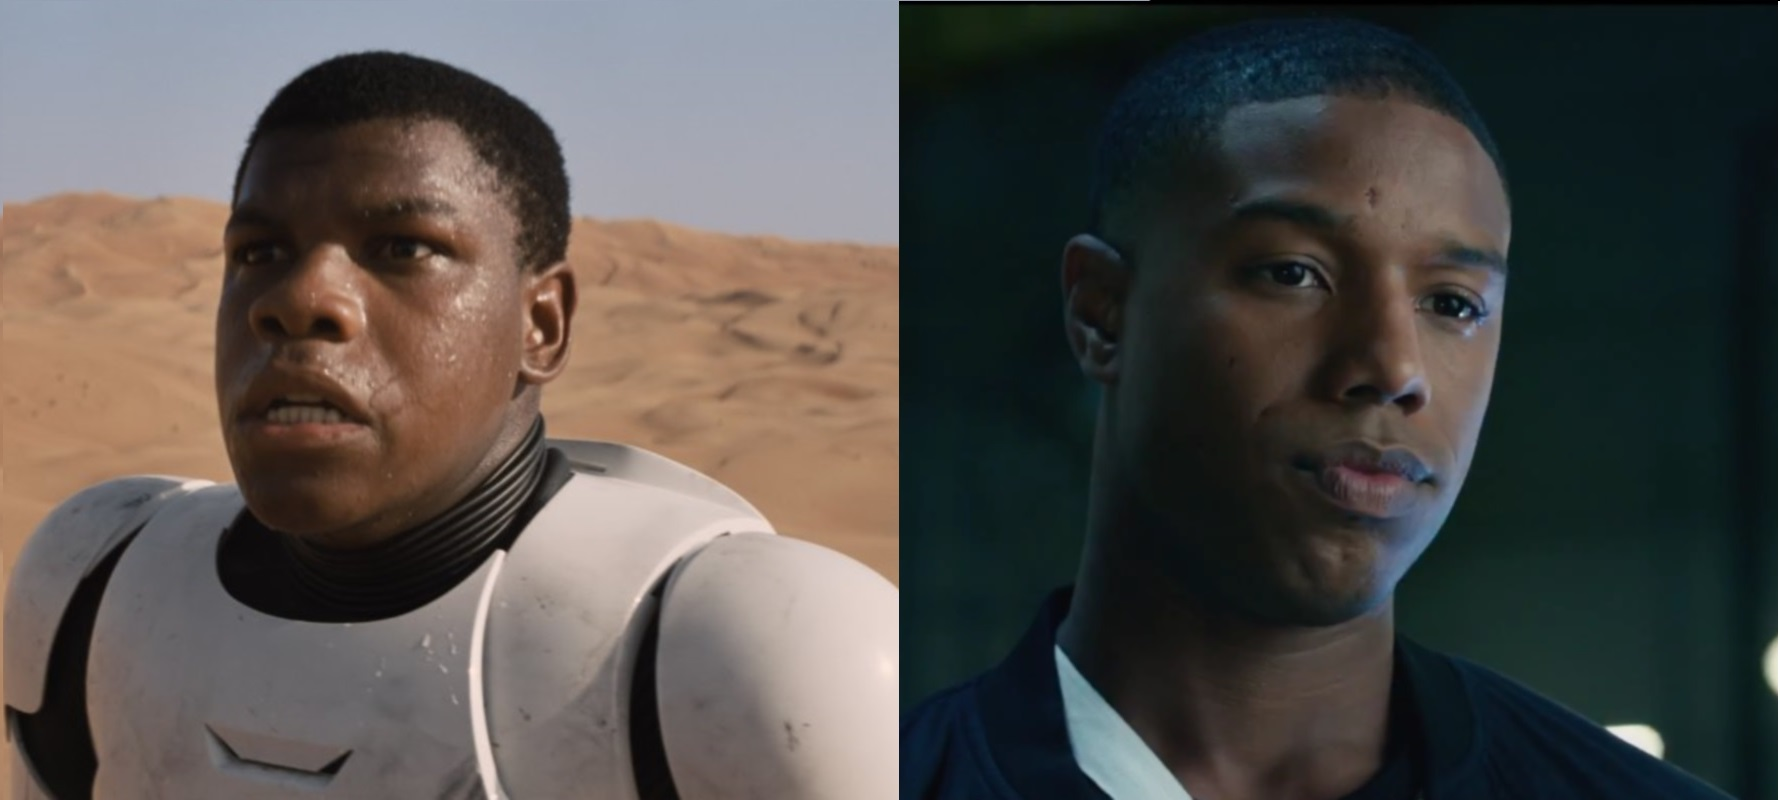 MOC Monday: John Boyega and Michael B. Jordan - JUST ADD COLOR-Affirming Ourselves Through Entertainment